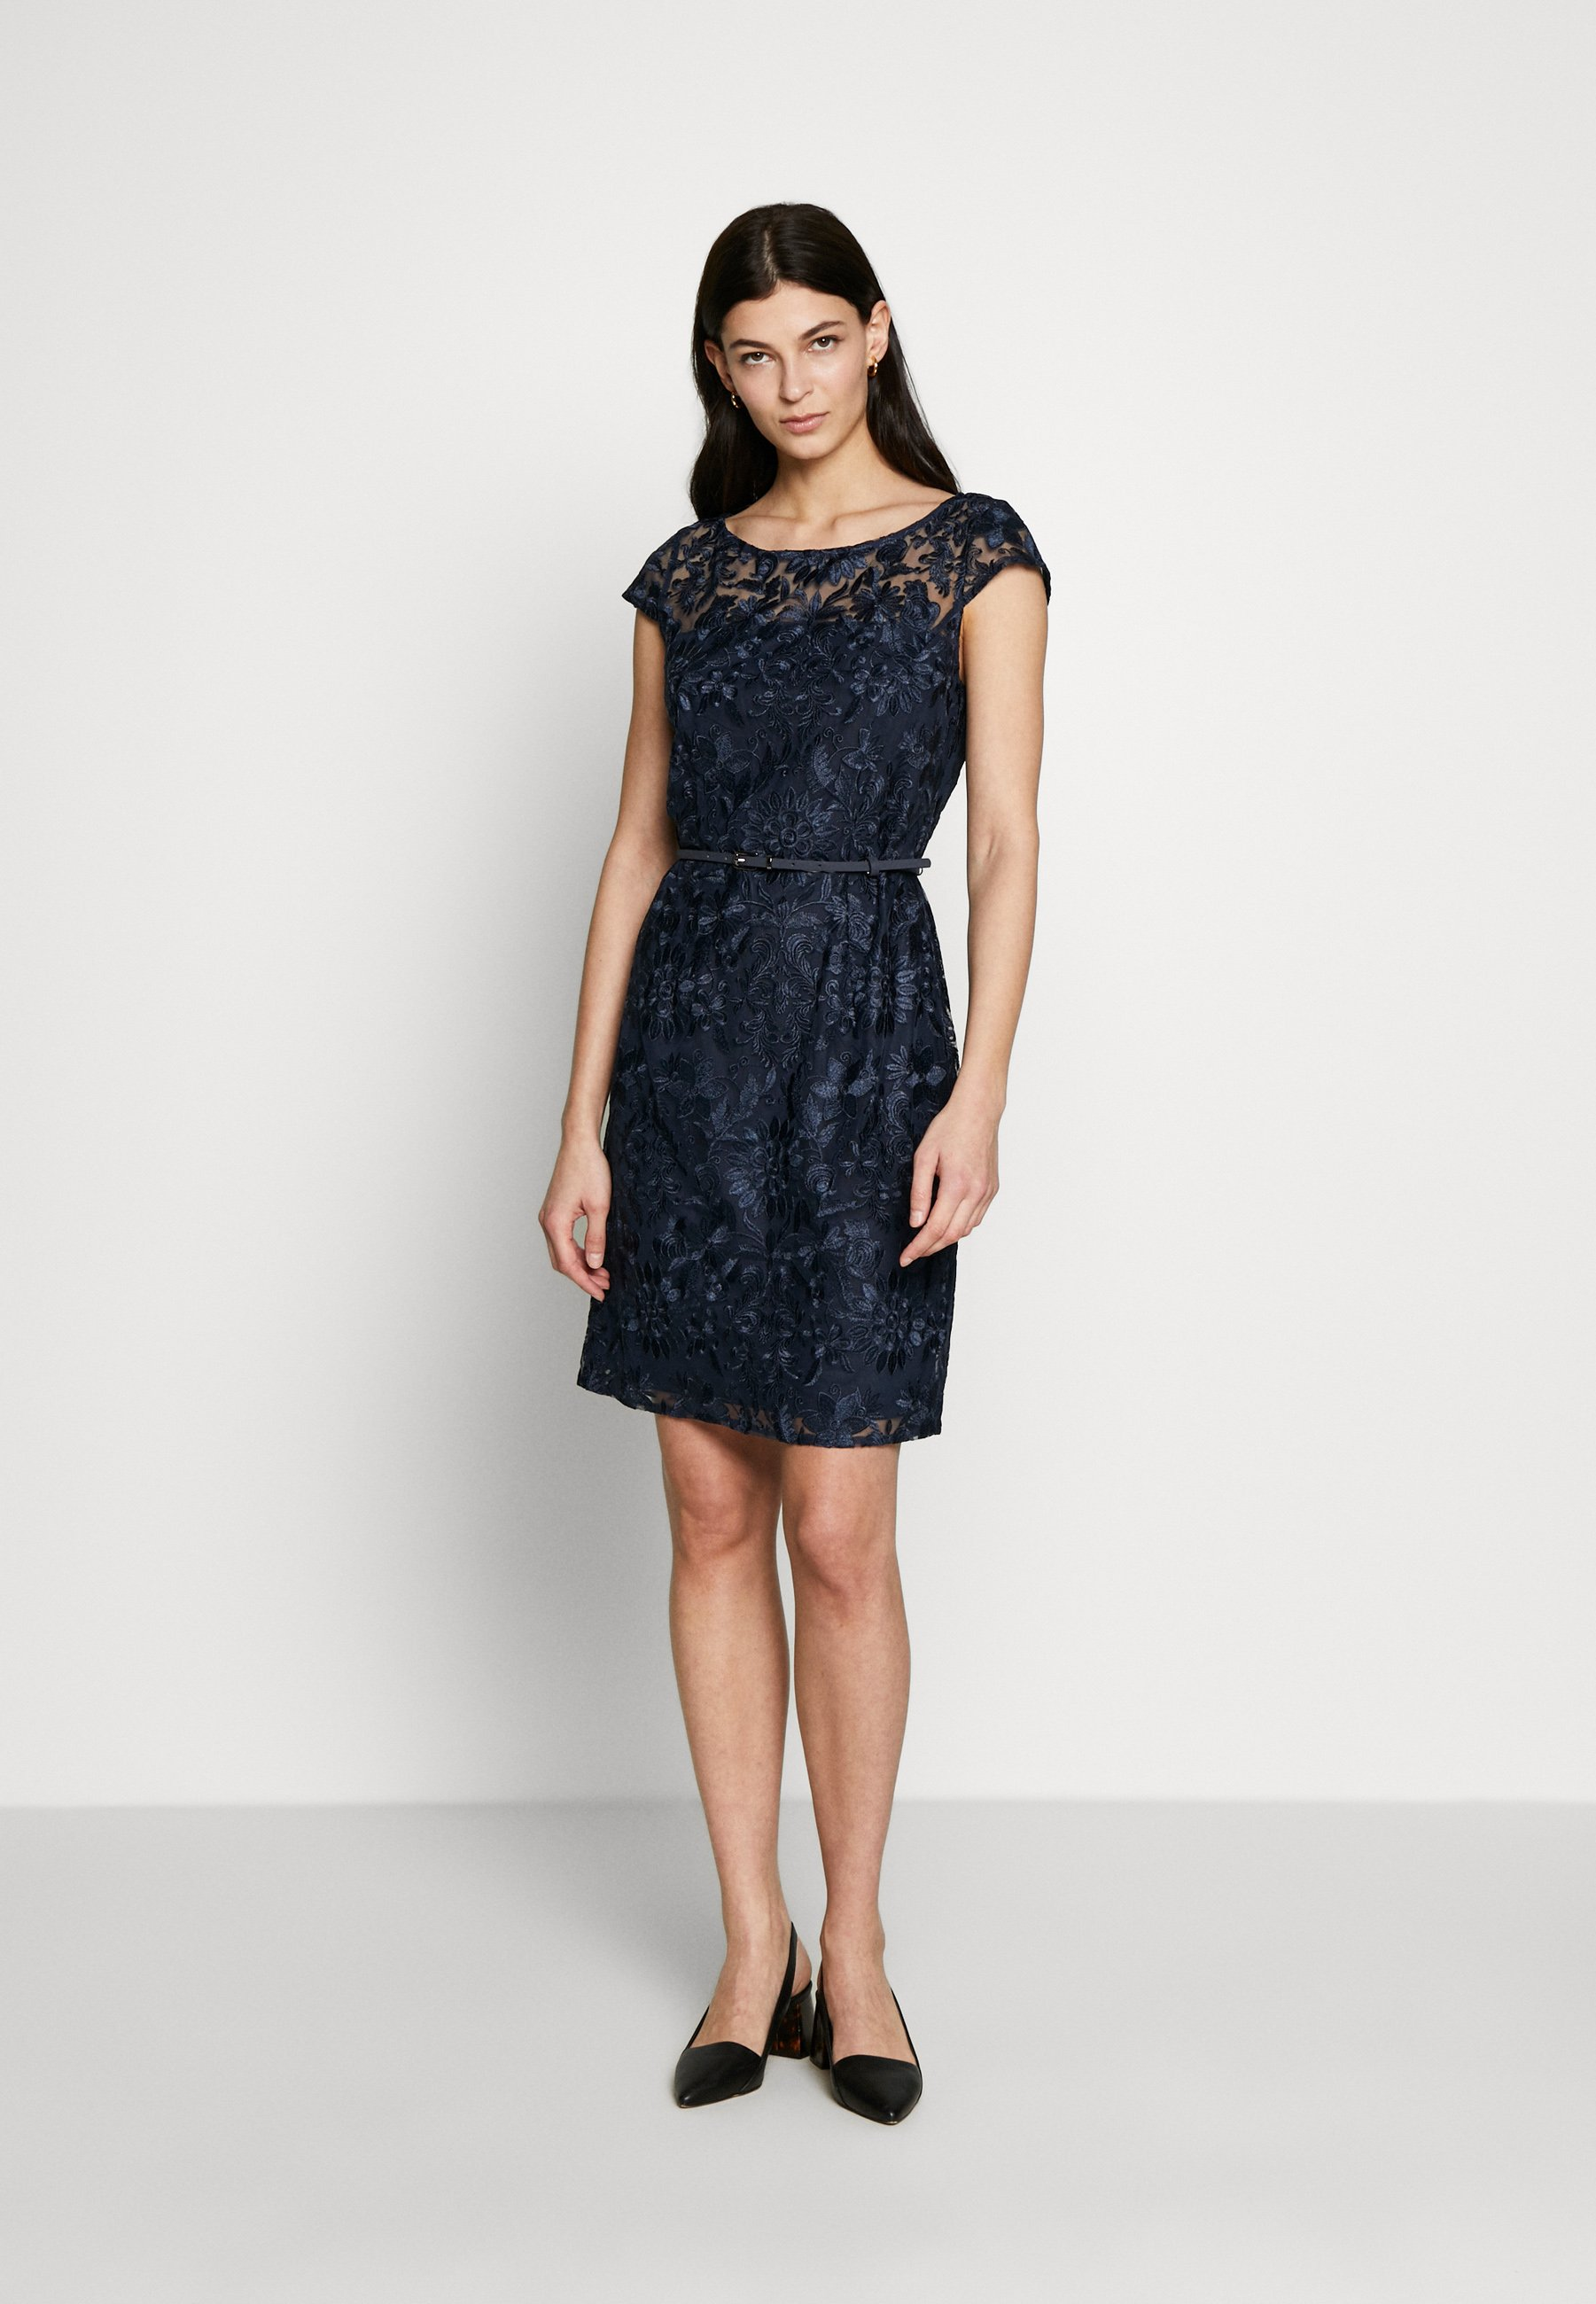 dress - cocktailkleid/festliches kleid - navy